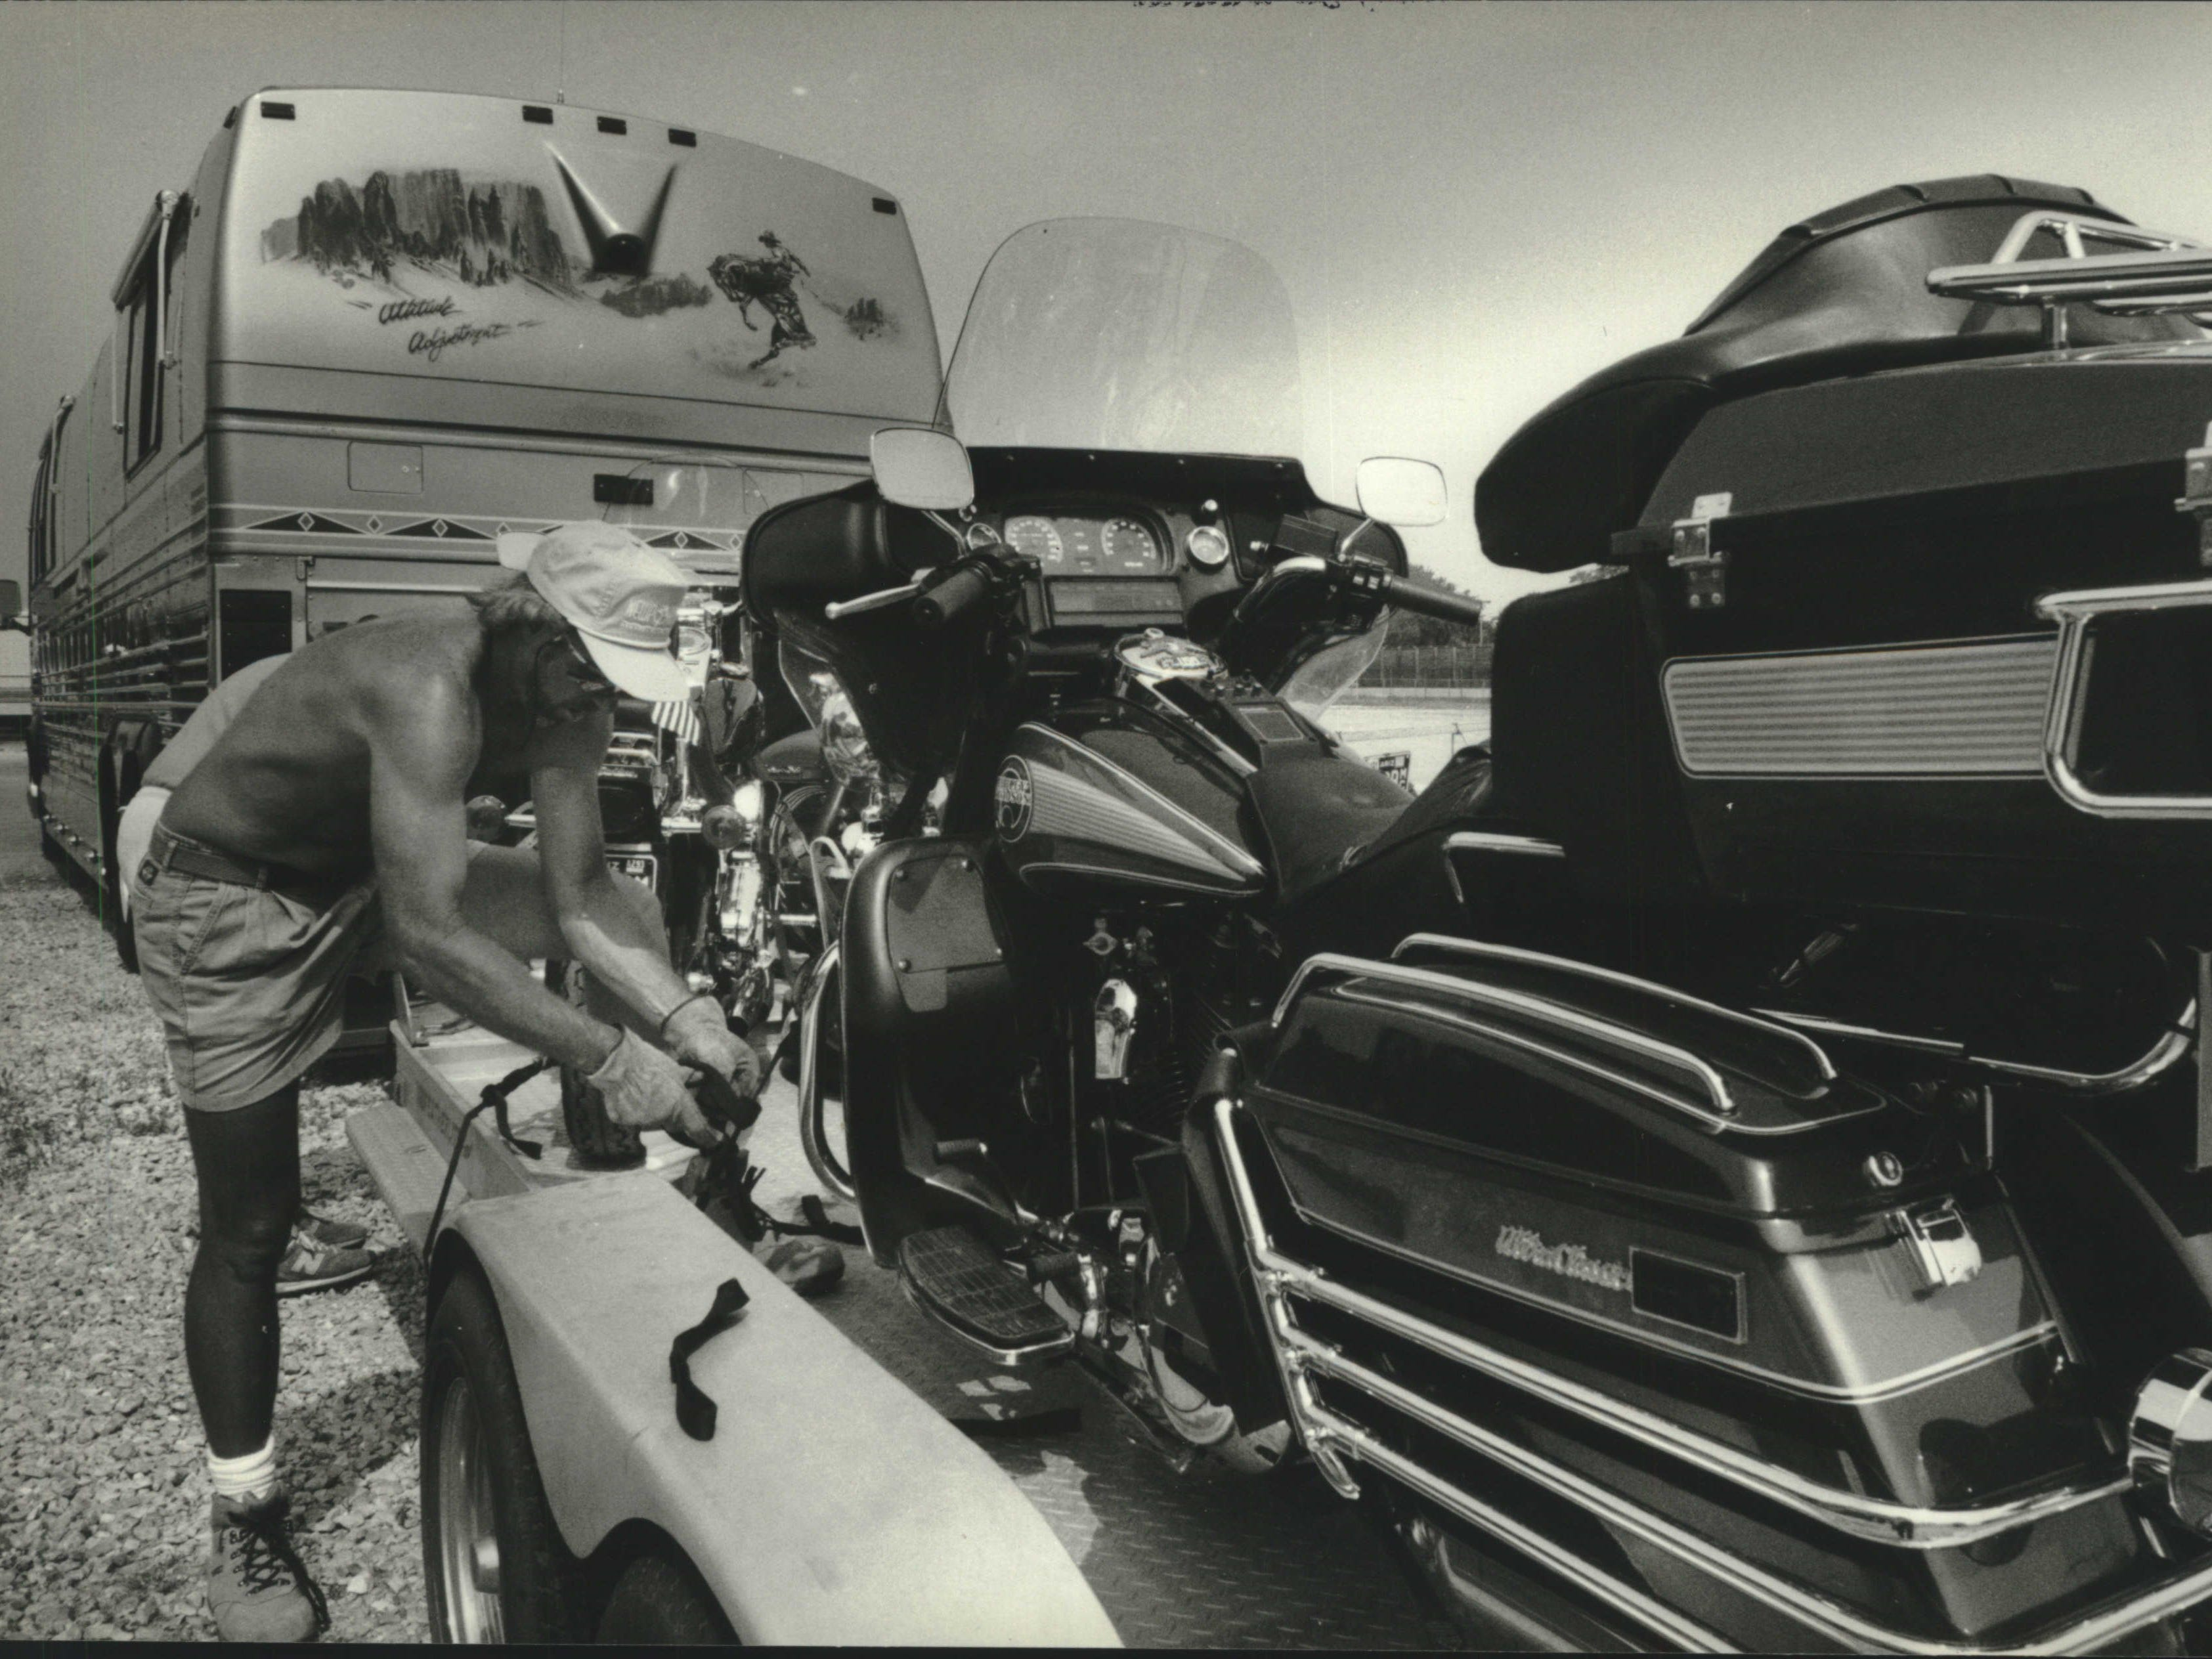 1993: After Harley-Davidson's 90th anniversary parade and celebration, Sam Ragland of Lake Havasu City, Arizona, packs up at State Fair Park to head for another motorcycle rally at Sturgis, S.D.